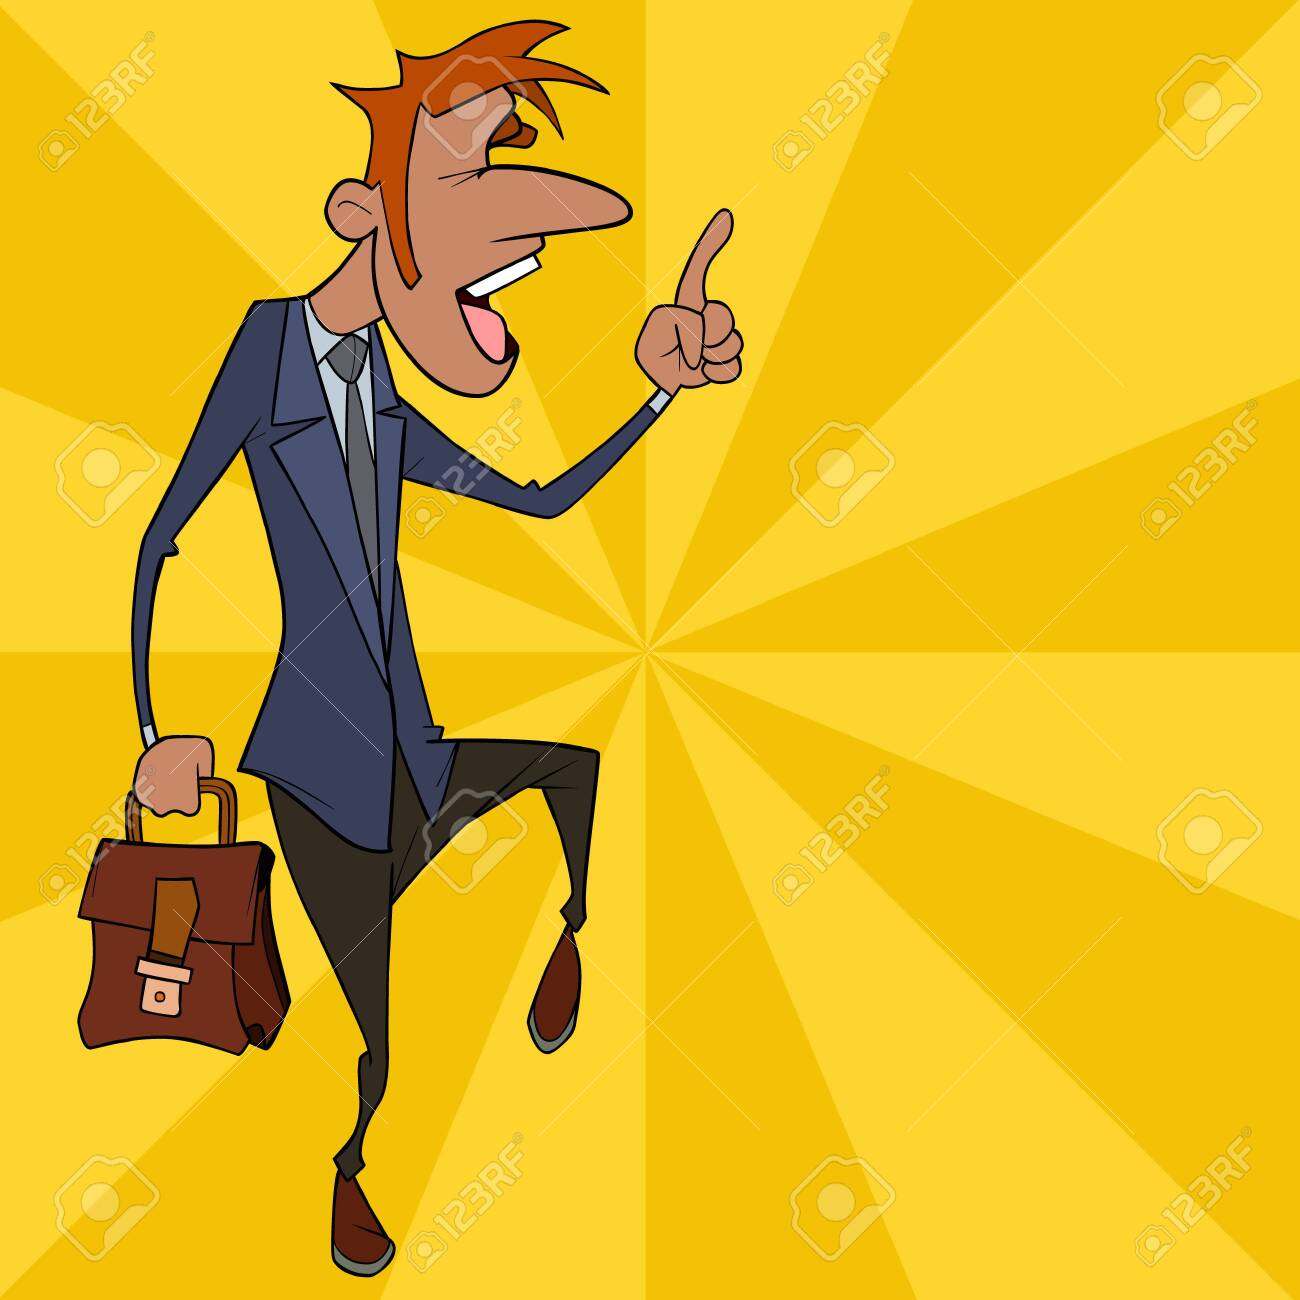 emotional cartoon man in suit with briefcase points index finger up - 147001607